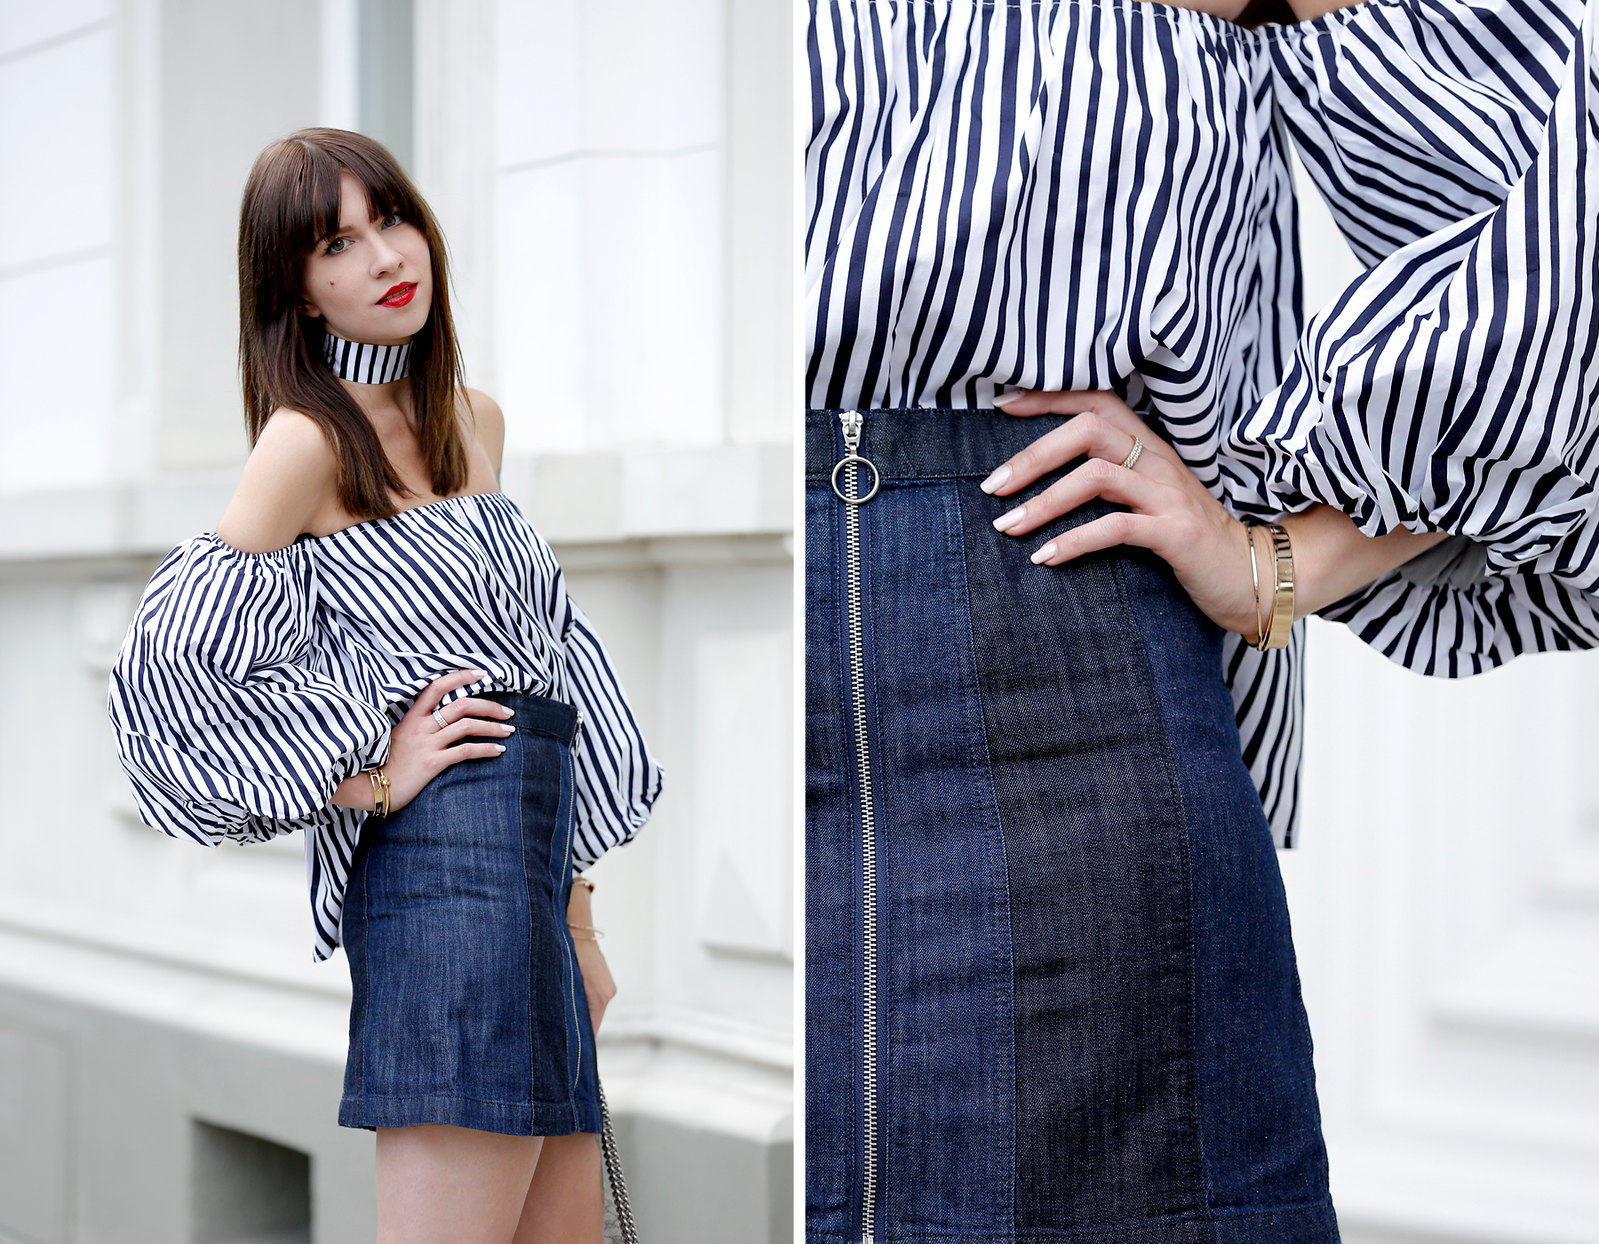 ootd outfit potd lookbook storets off shoulder stripe blouse chic mini denim skit seventies gucci dionysus bag luxury blogger fashionblog cats & dogs modeblogger berlin ricarda schernus dusseldorf fashionblog 5